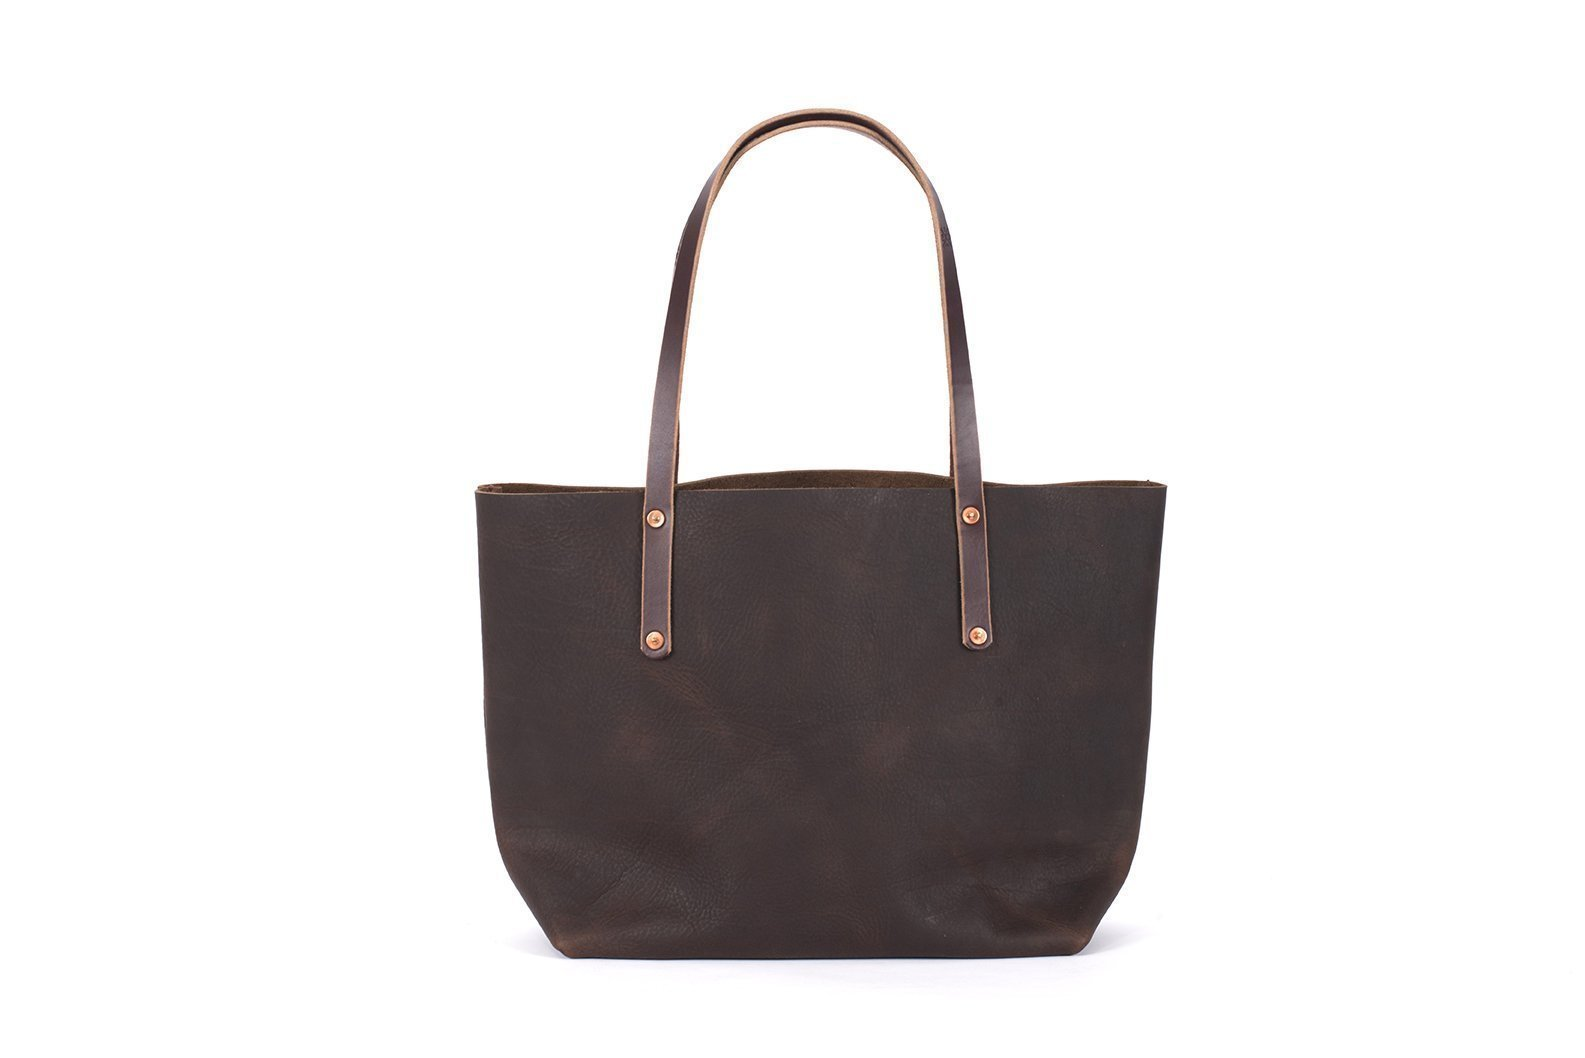 Leather Tote Bag - Avery Tote